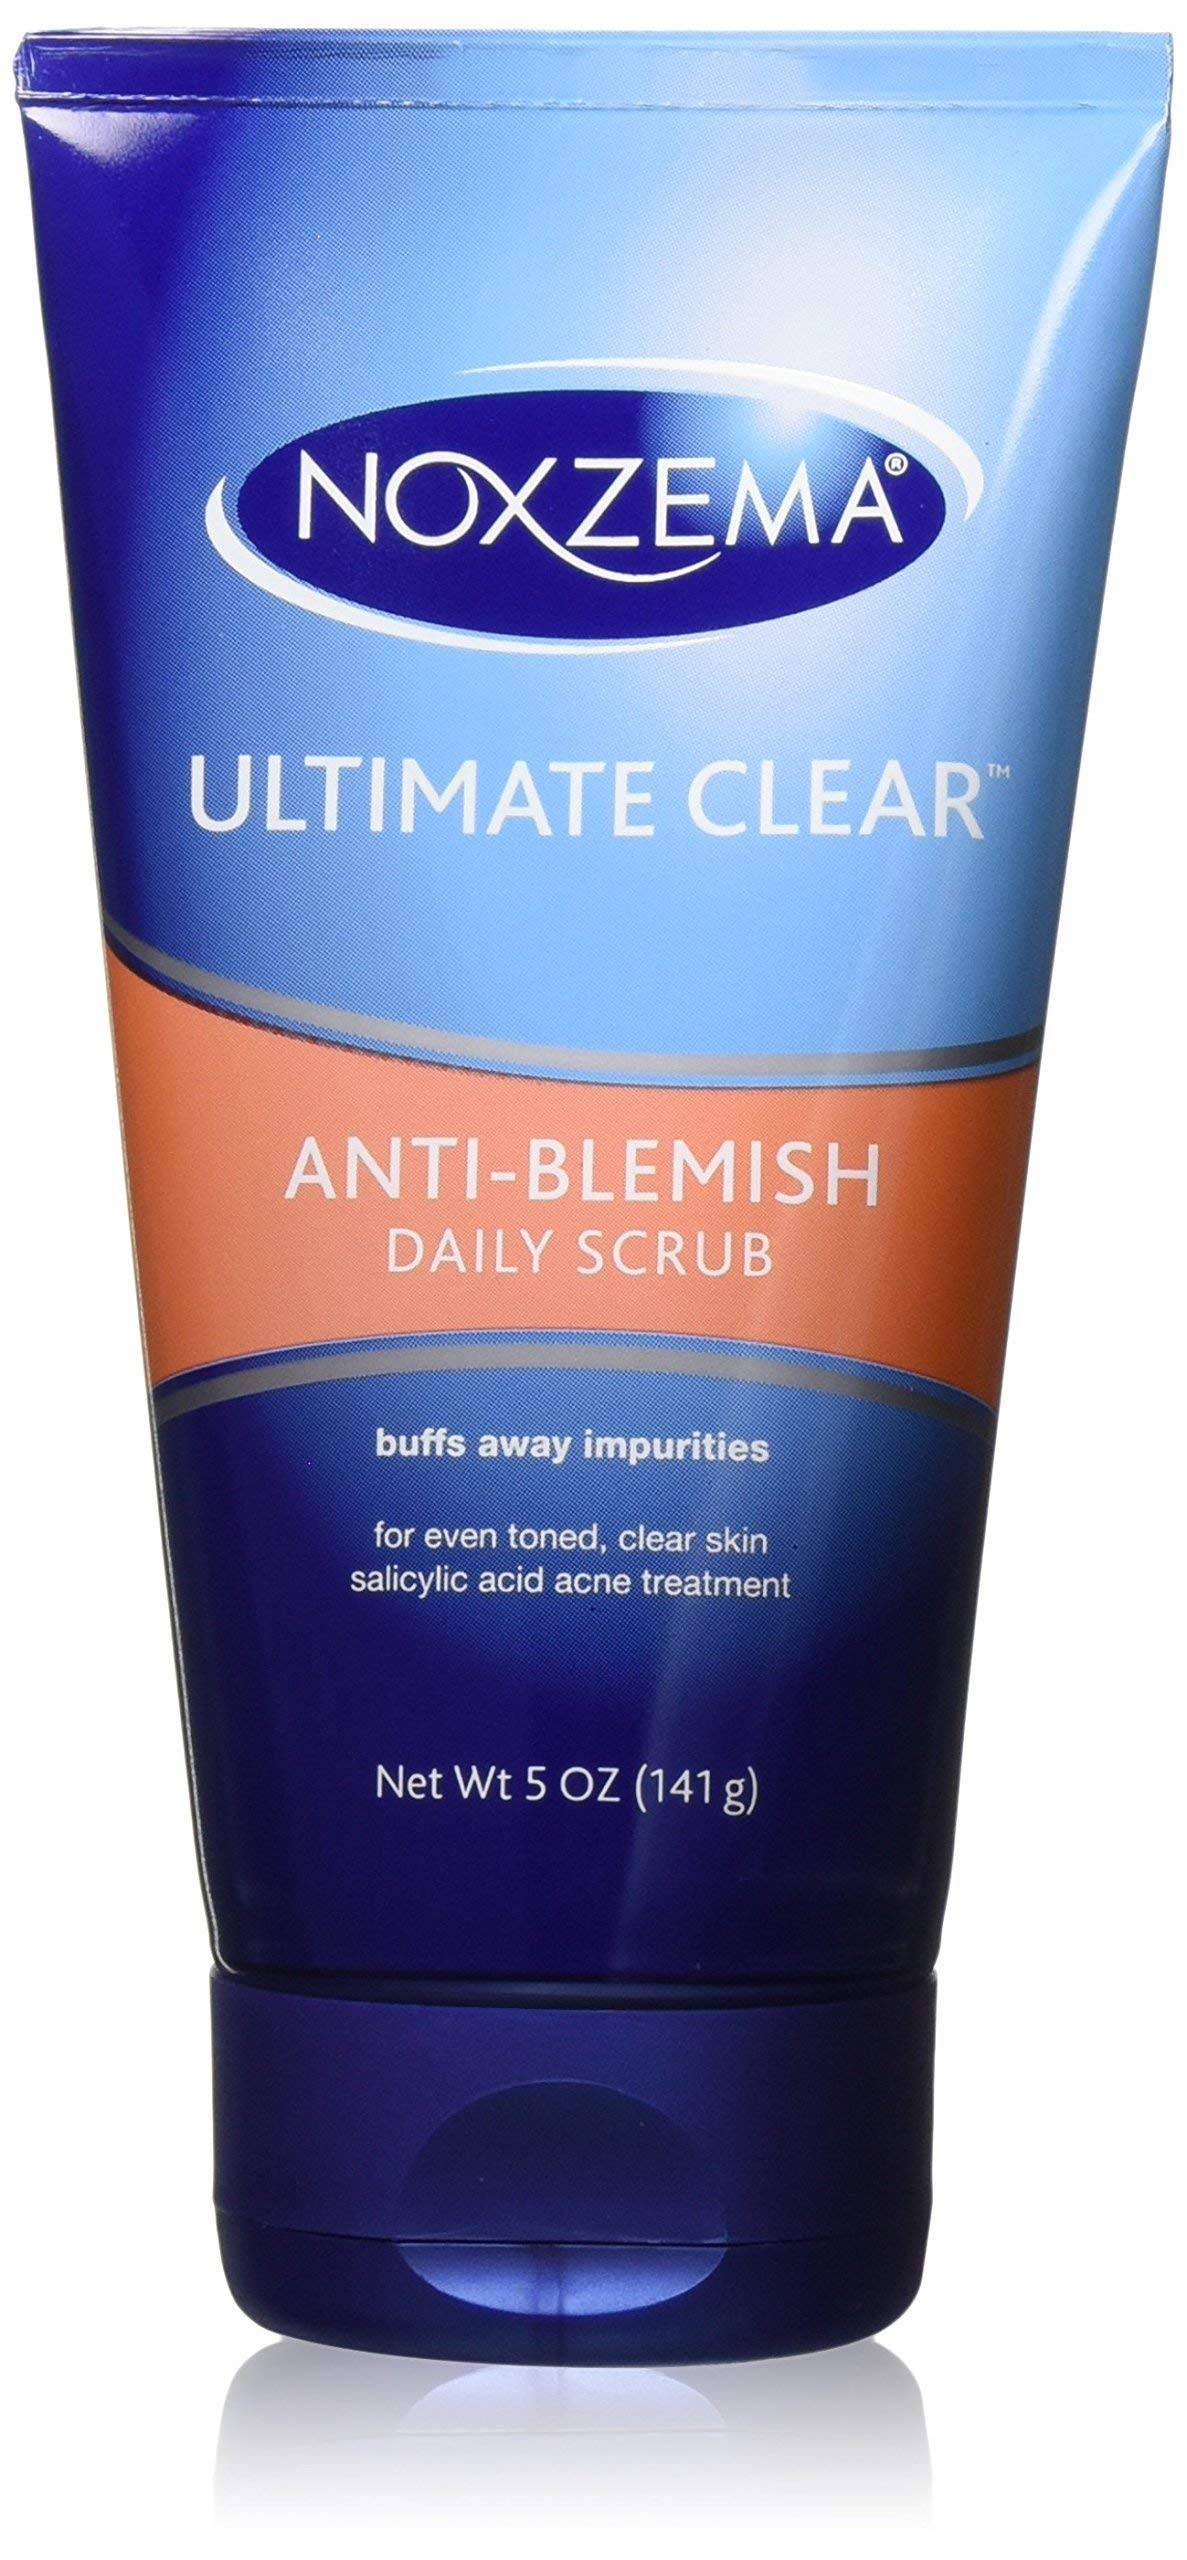 Noxzema Anti-Blemish Daily Scrub Tube, 5 oz, 2 Piece by Noxzema